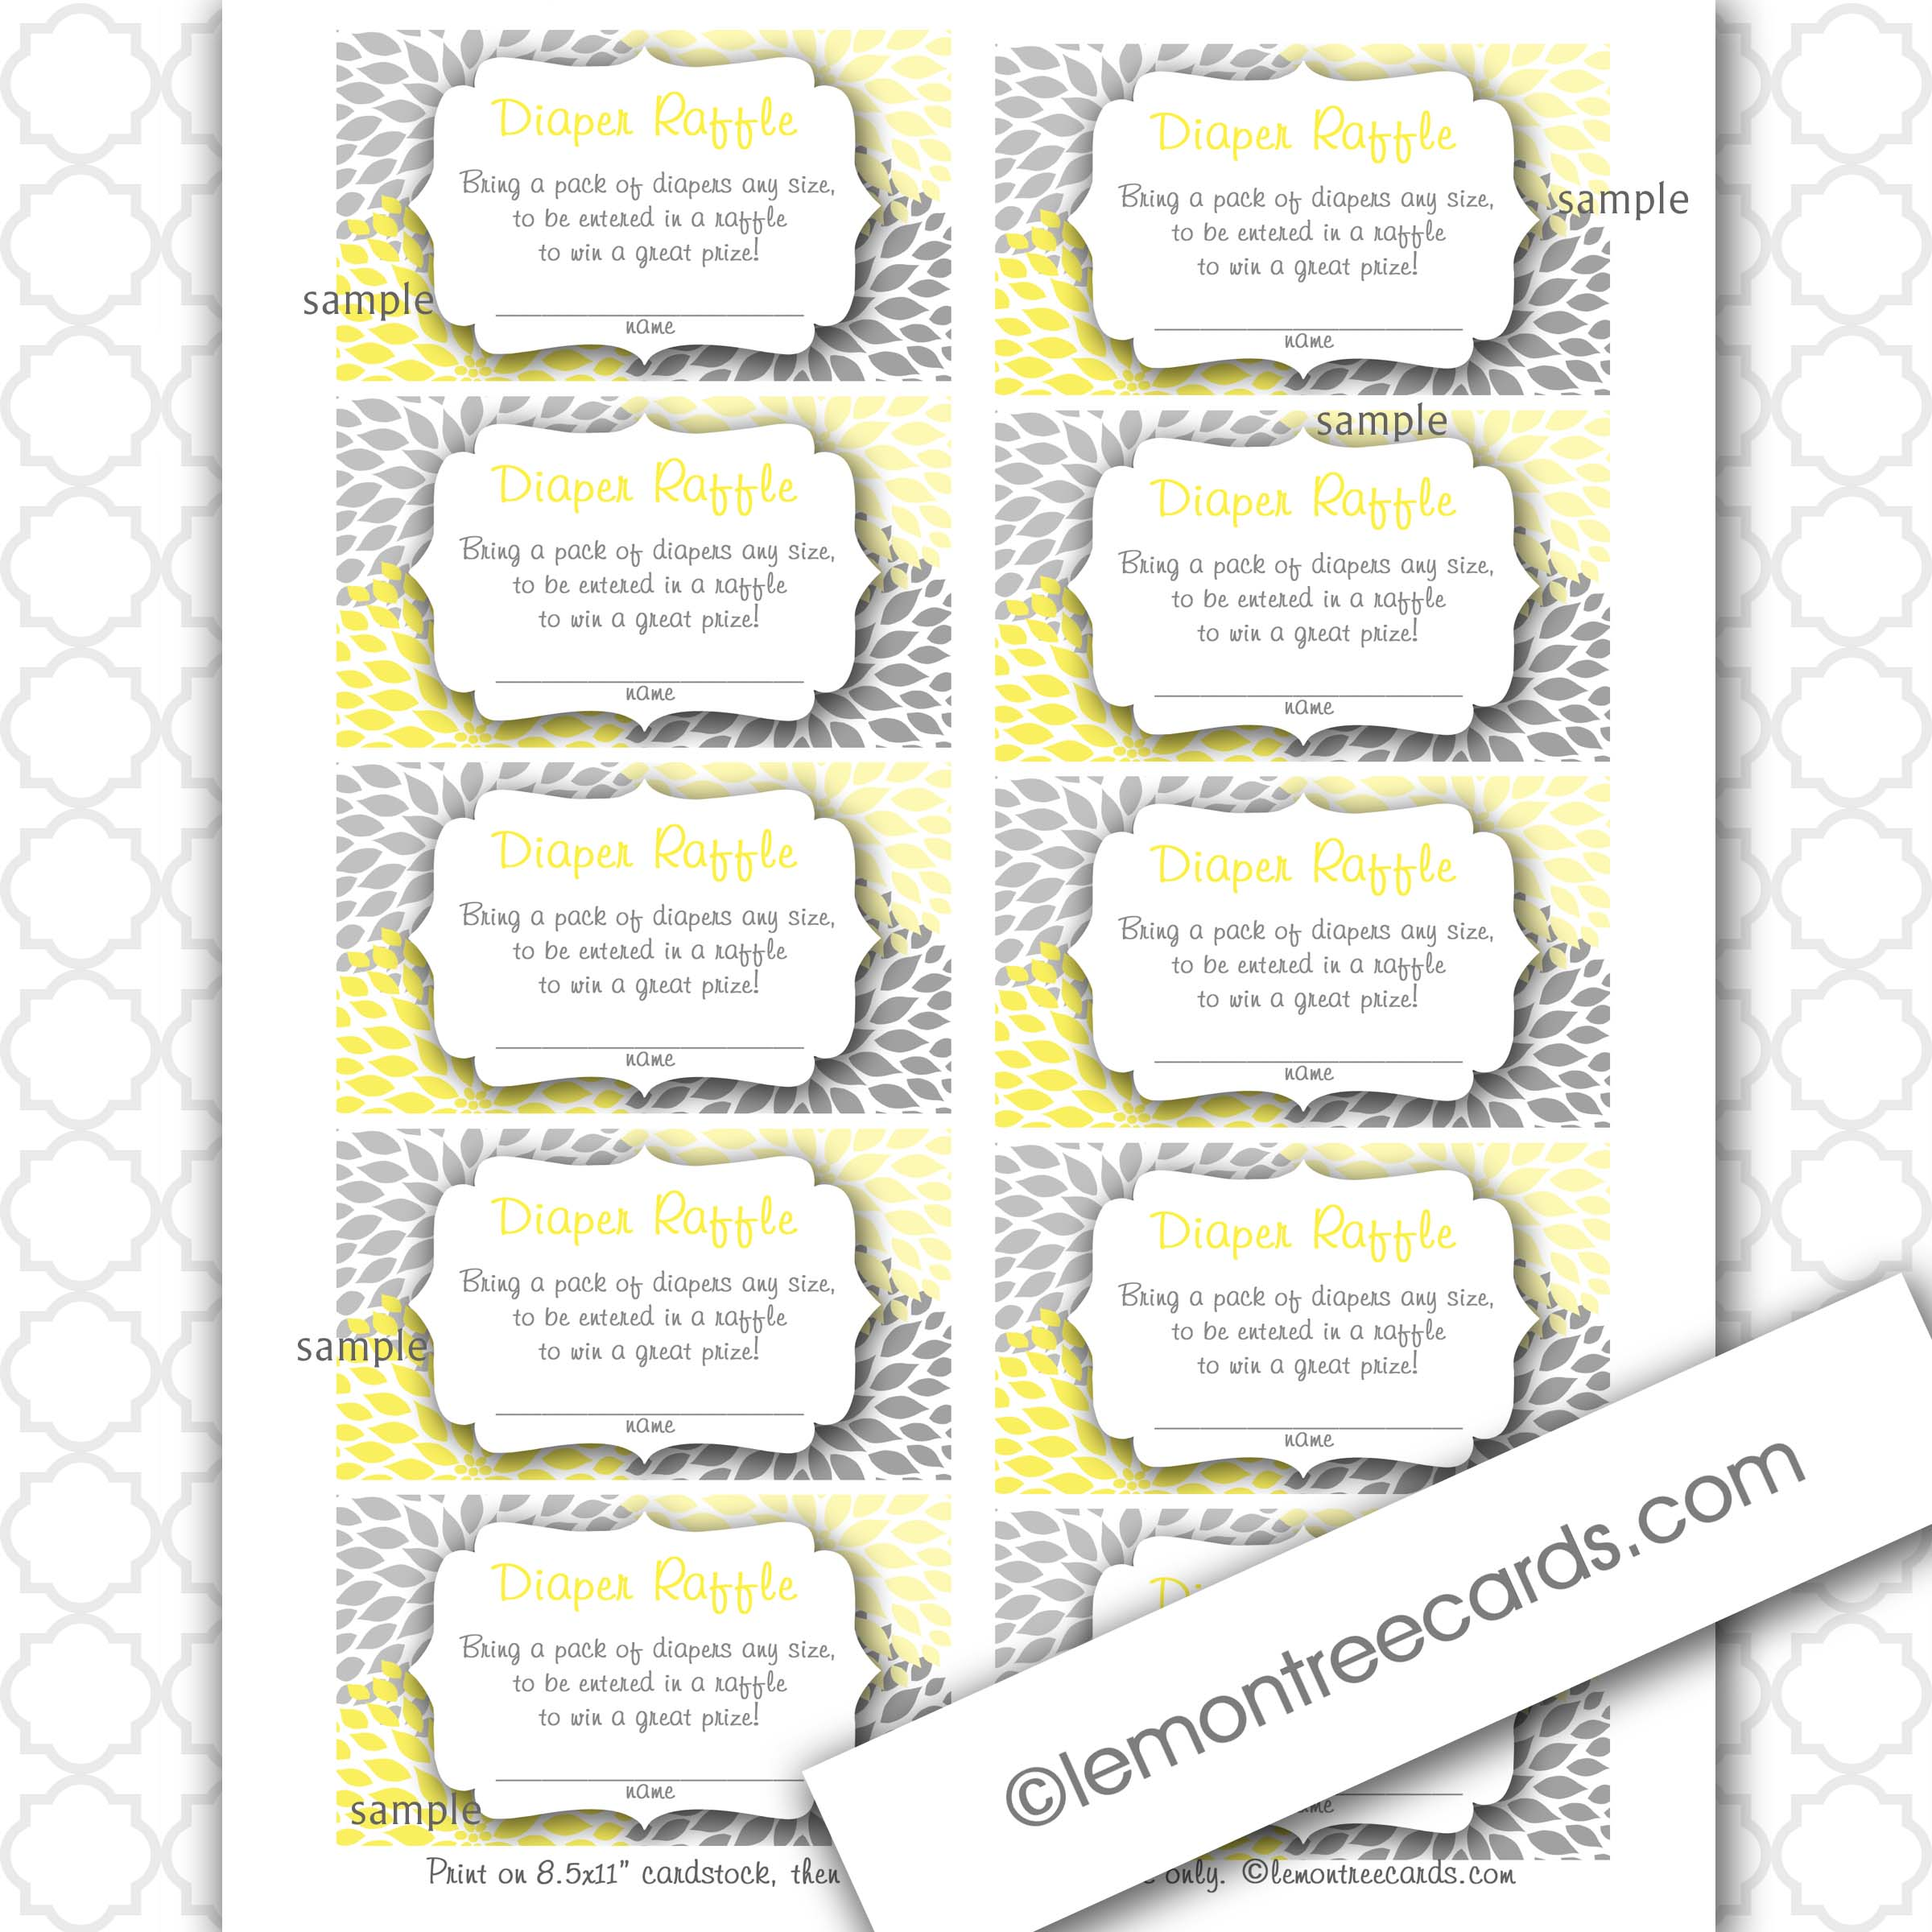 raffle ticket template sample document resume raffle ticket template raffle ticket templates printable raffle tickets template printable diaper raffle tickets